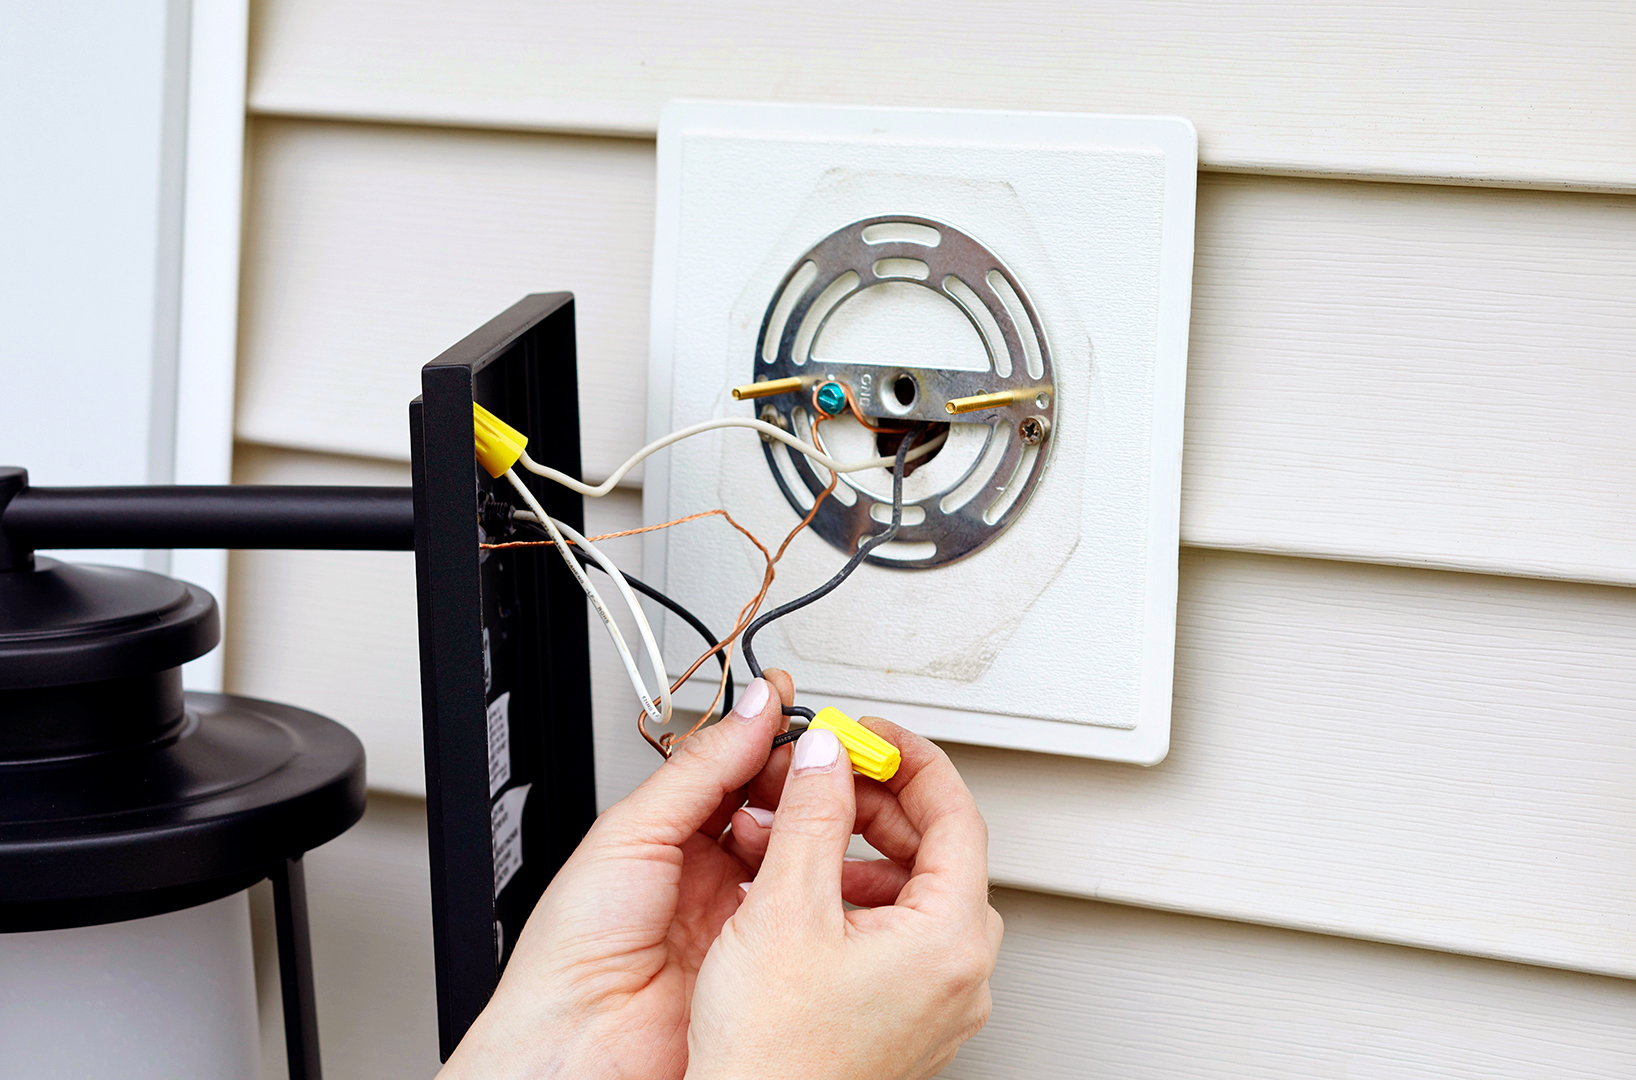 Terrific How To Replace An Outdoor Light Better Homes Gardens Wiring 101 Mecadwellnesstrialsorg